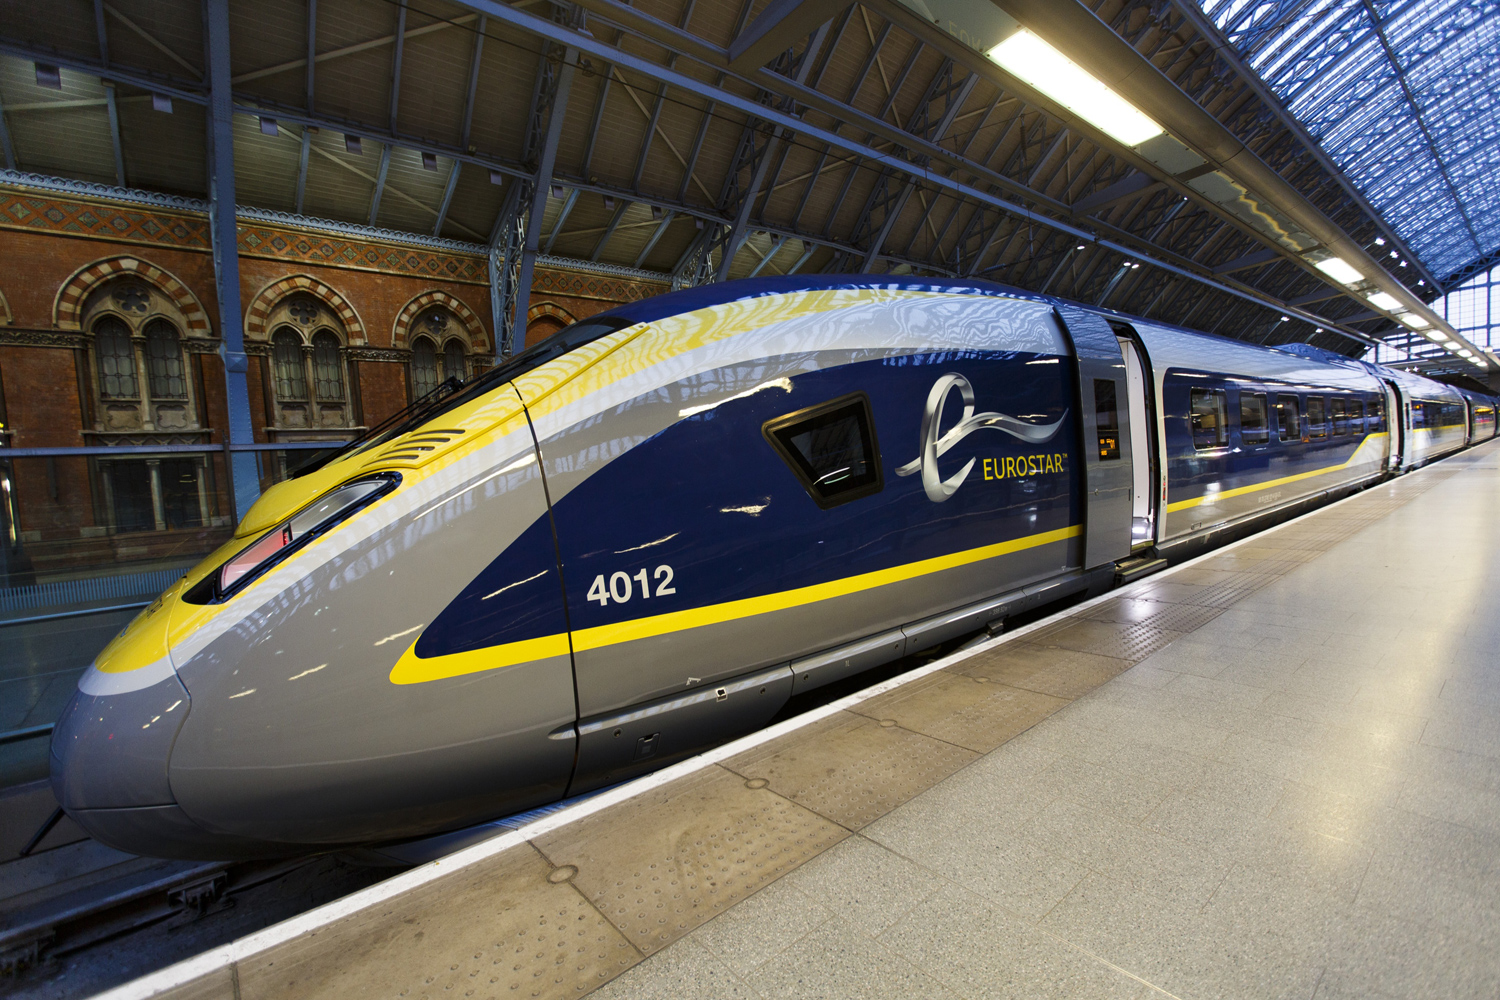 Trains London To Paris Cheap Eurostar Tickets Happyrail